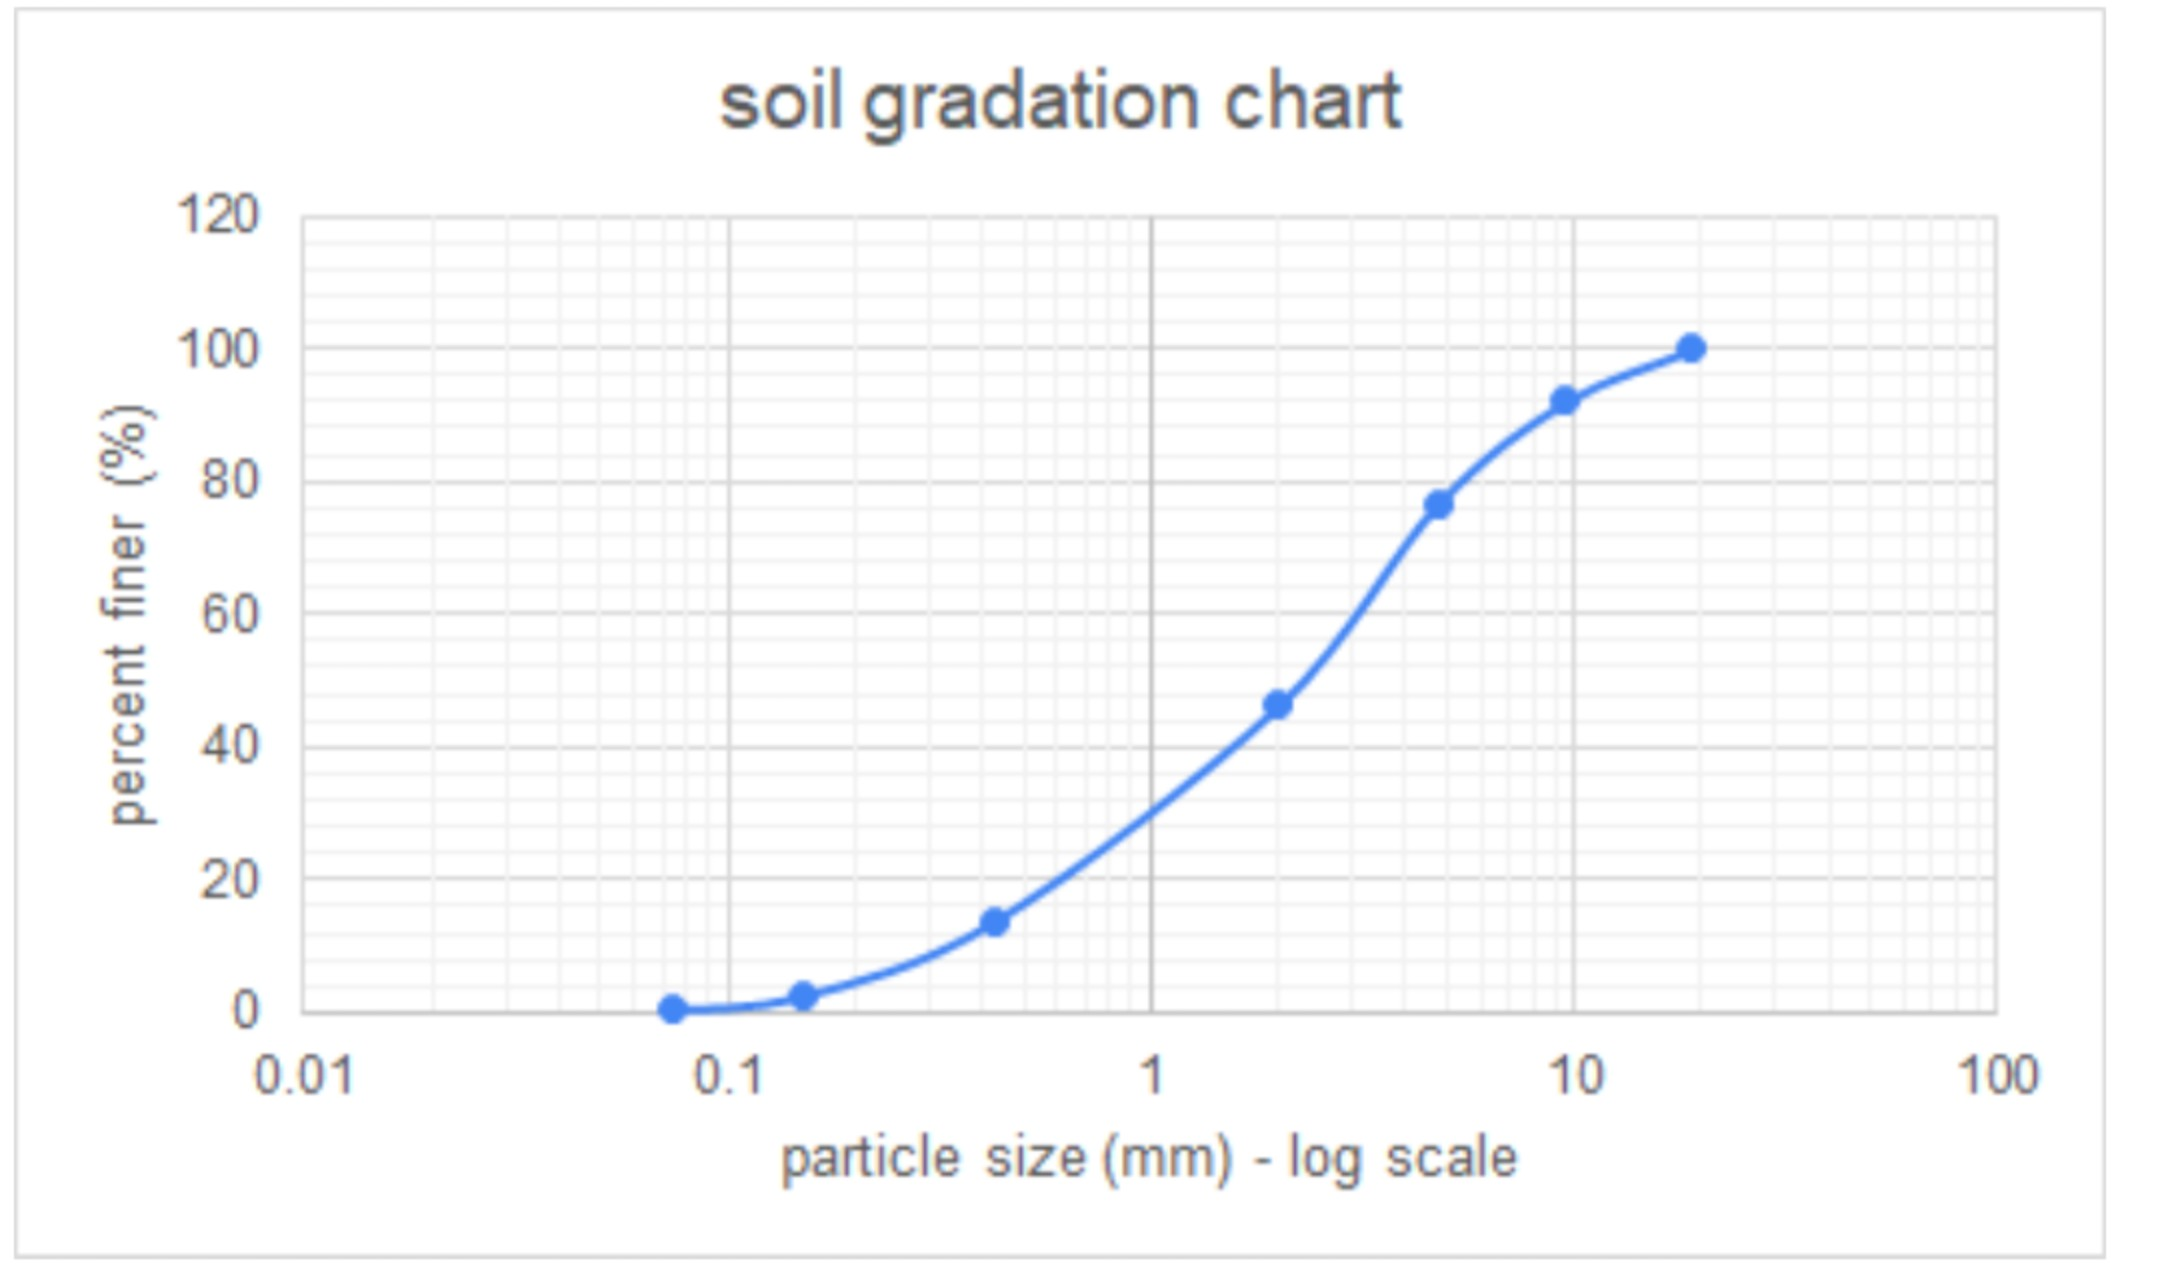 soil gradation chart 120 100 80 60 40 20 0.1 100 0.01 10 particle size (mm) - log scale percent finer (%)